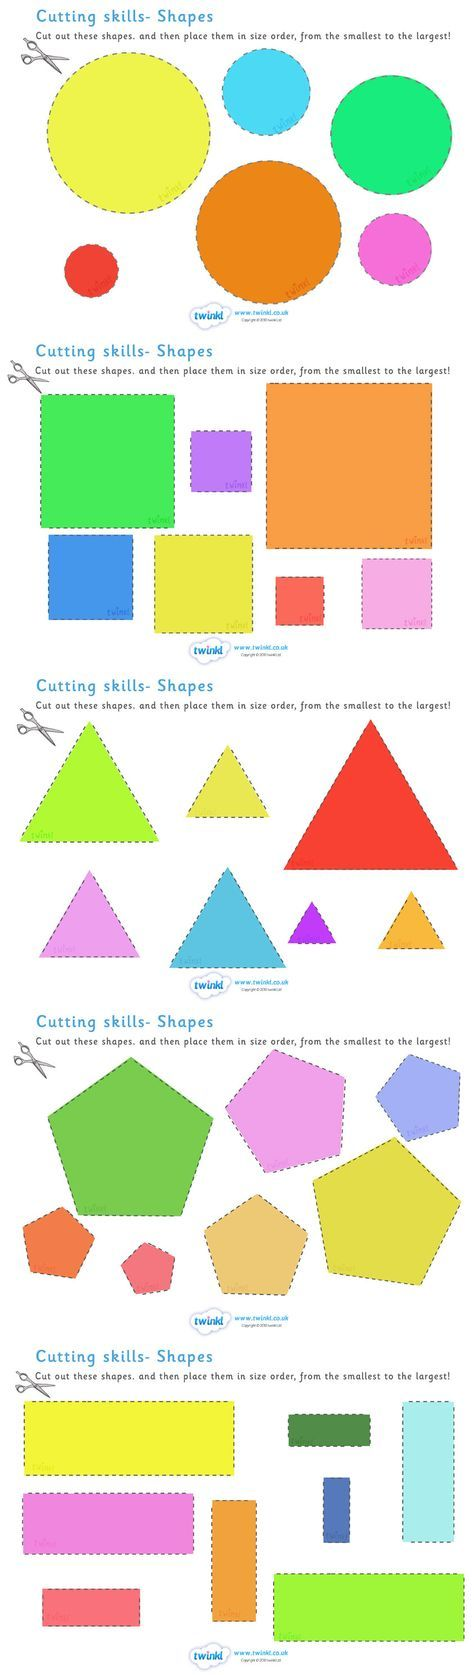 Cutting skills - Schneidefertigkeit üben  --> billiger und ressourcenschonender: Ausschneiden aus Katalog/Werbung!!  Twinkl Resources >> Cutting Skills Worksheet Size & Shape Ordering >> Thousands of printable primary teaching resources for EYFS, KS1, KS2 and beyond! education, home school, worksheets, cut, scissors, motor neurones,